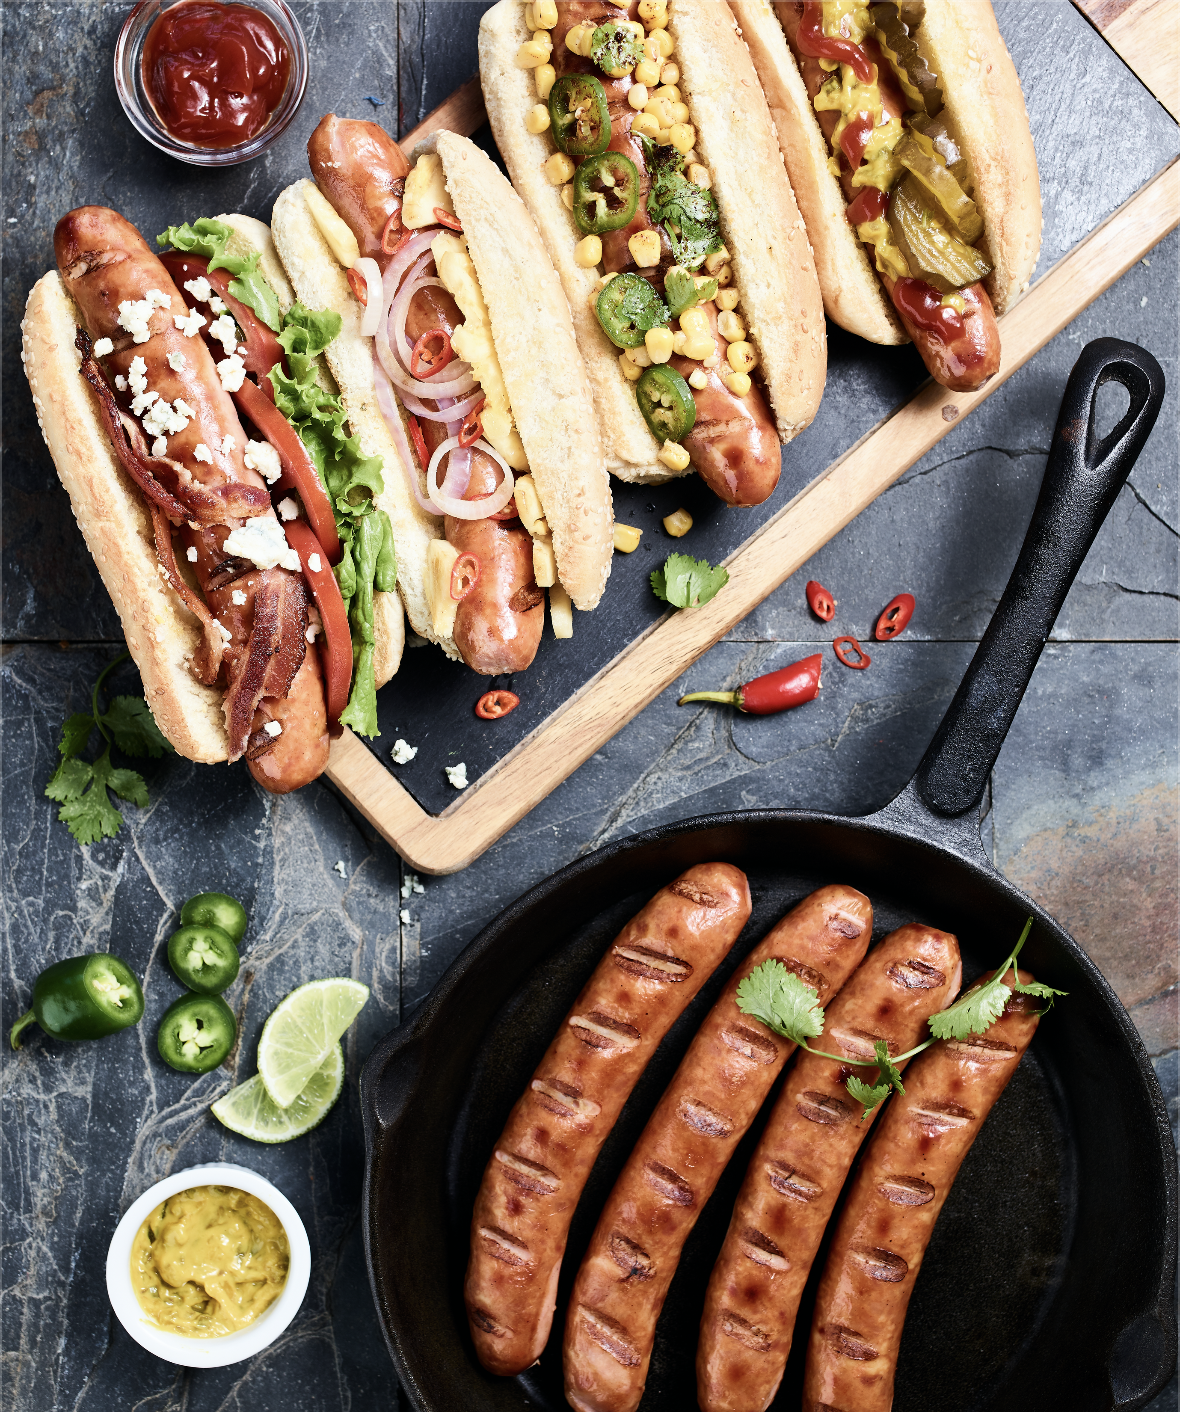 Gourmet Bad Dawg Sausages